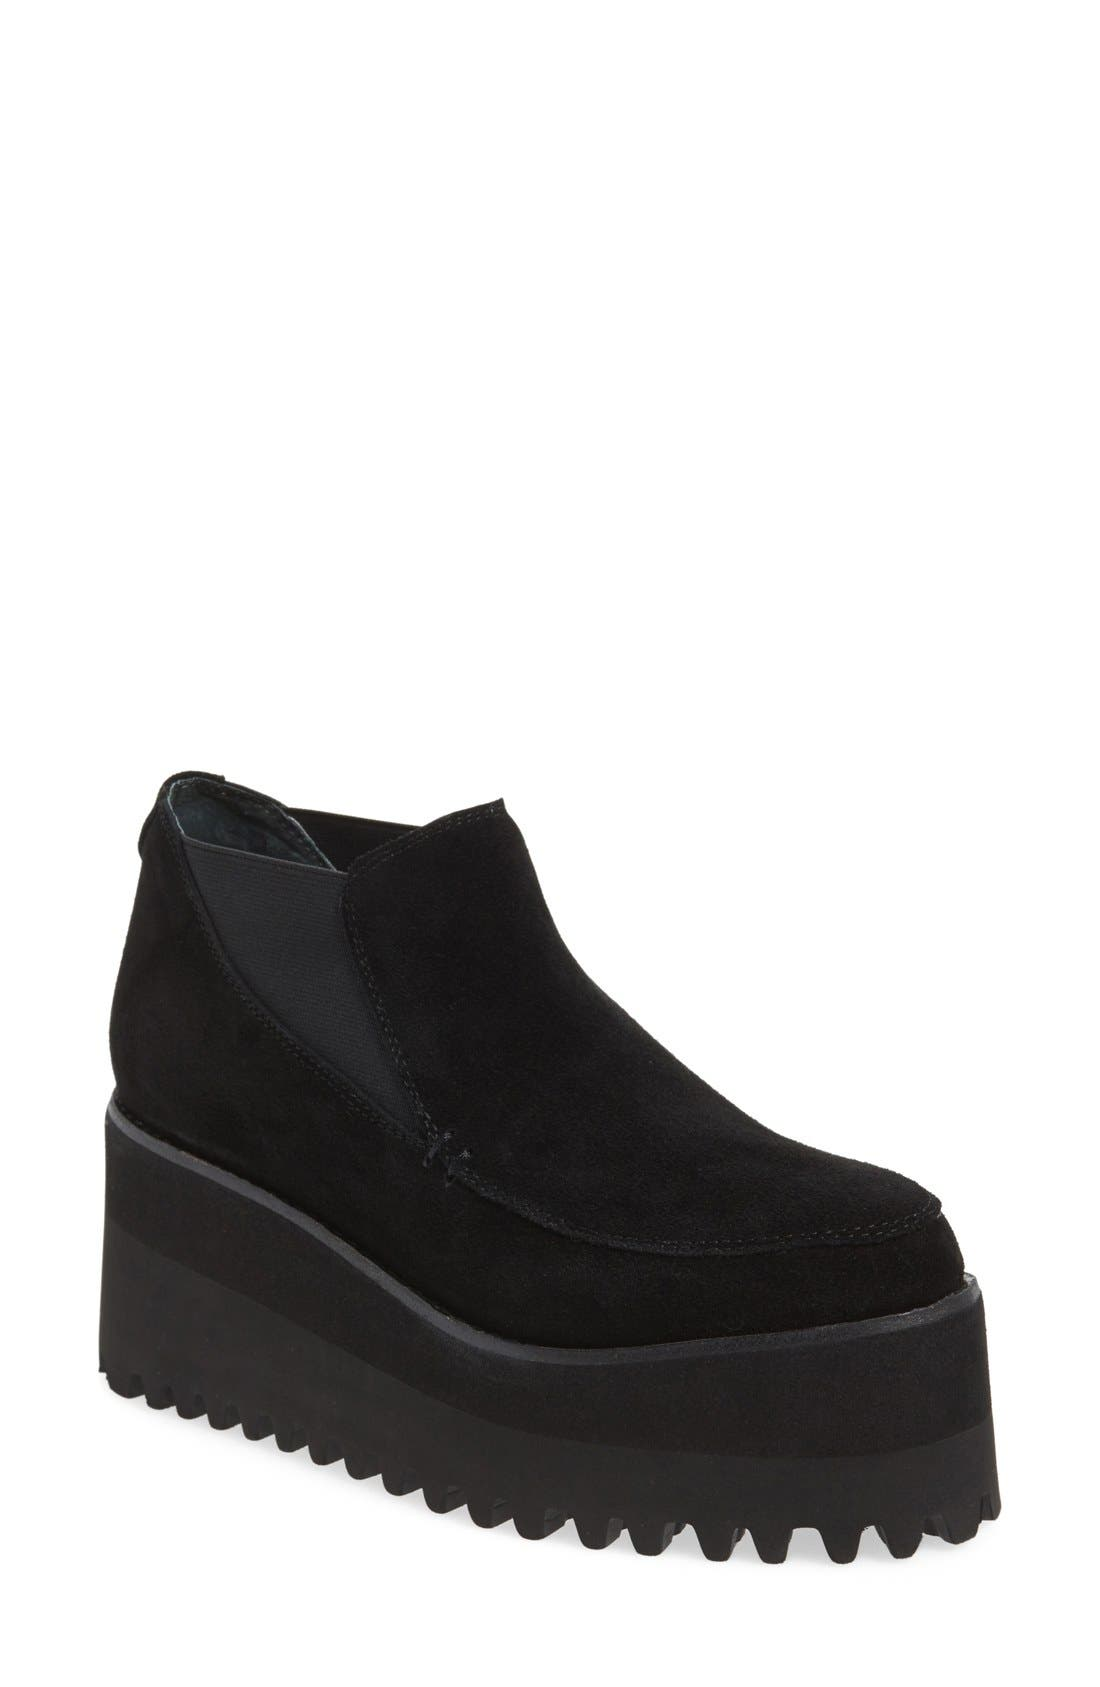 Alternate Image 1 Selected - Jeffrey Campbell 'Booker' Boot (Women)